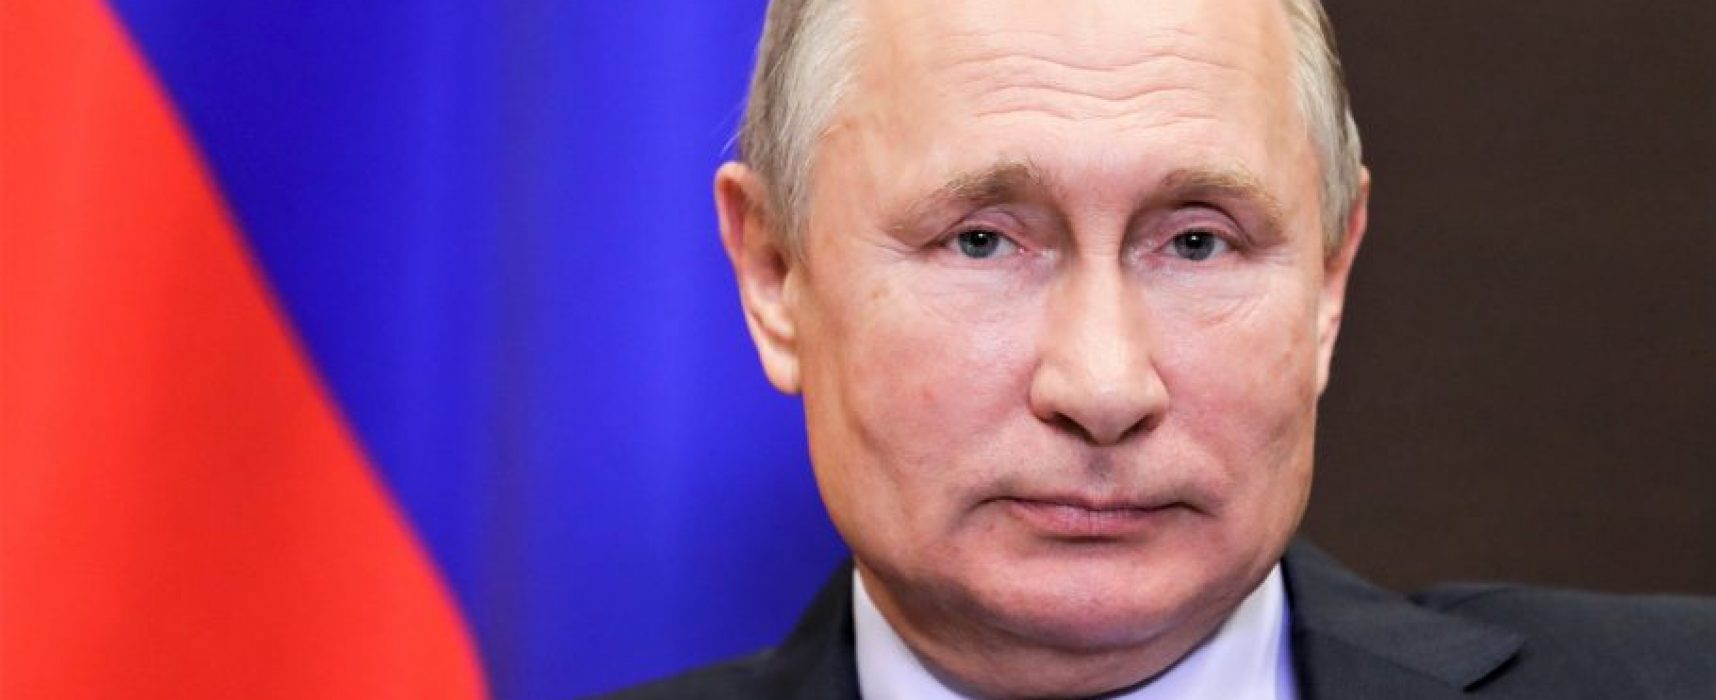 Afraid of the known Russians now see Putin as a threat not a saviour